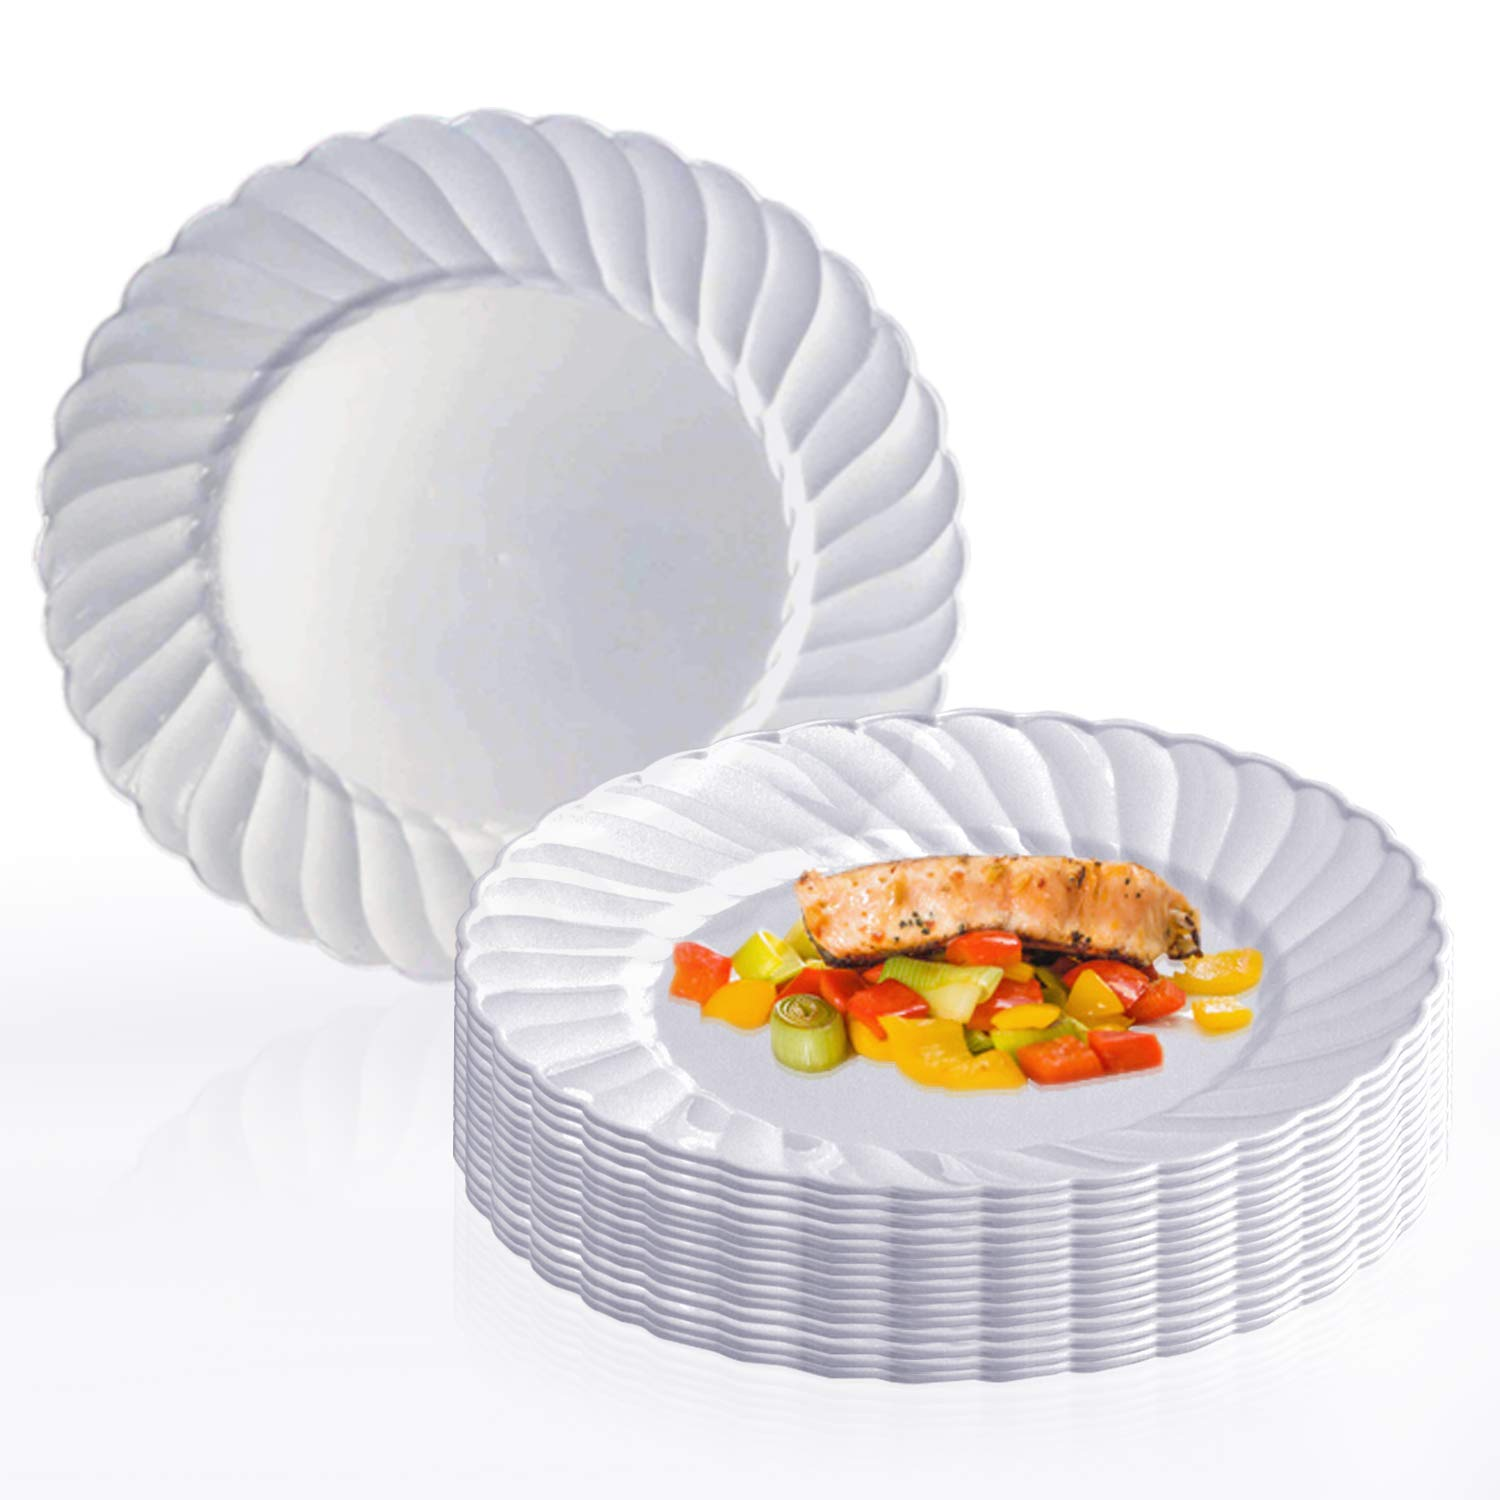 Elegant Disposable Plastic Buffet Plates 180 Pcs - 9'' Heavy Duty Fancy Flared White Lunch Plates - Reusable Plastic Party Plates For Weddings, Christmas, Thanksgiving, Birthdays & Other Occasions by Kaya Collection